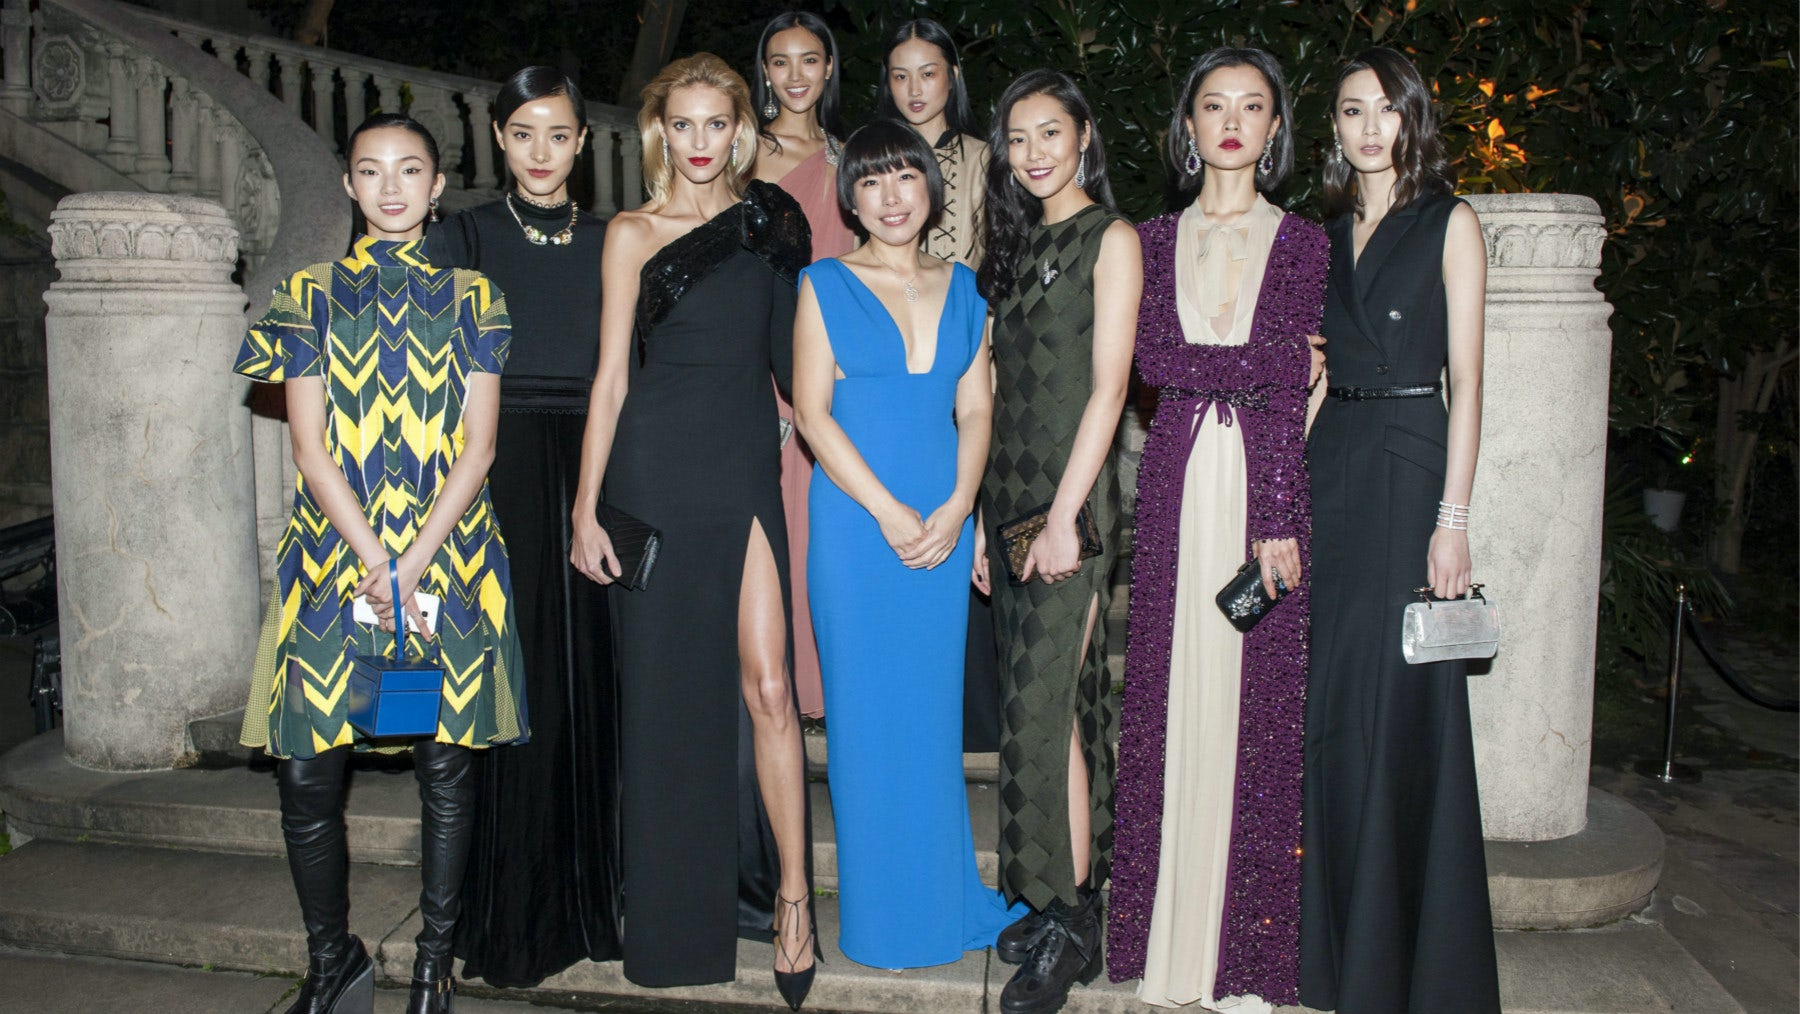 Vogue China editor-in-chief Angelica Cheung and models at the magazine's 10th anniversary party | Photo: Vogue China